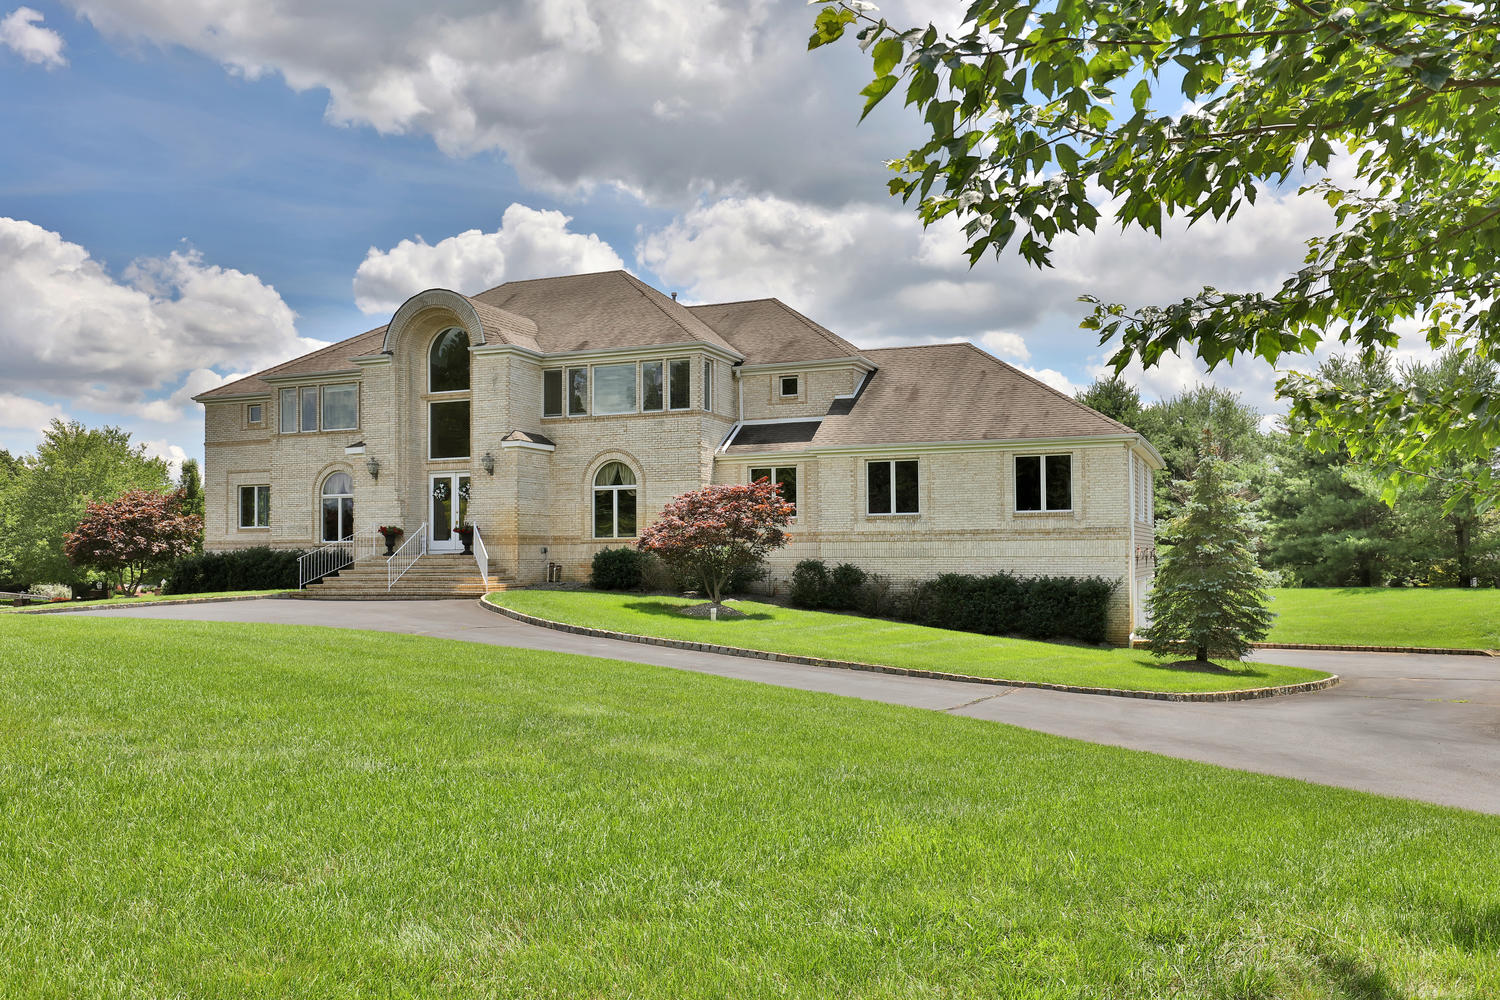 Single Family Home for Sale at Spectacular Custom Colonial 1 Old Stable Way Colts Neck, 07722 United States